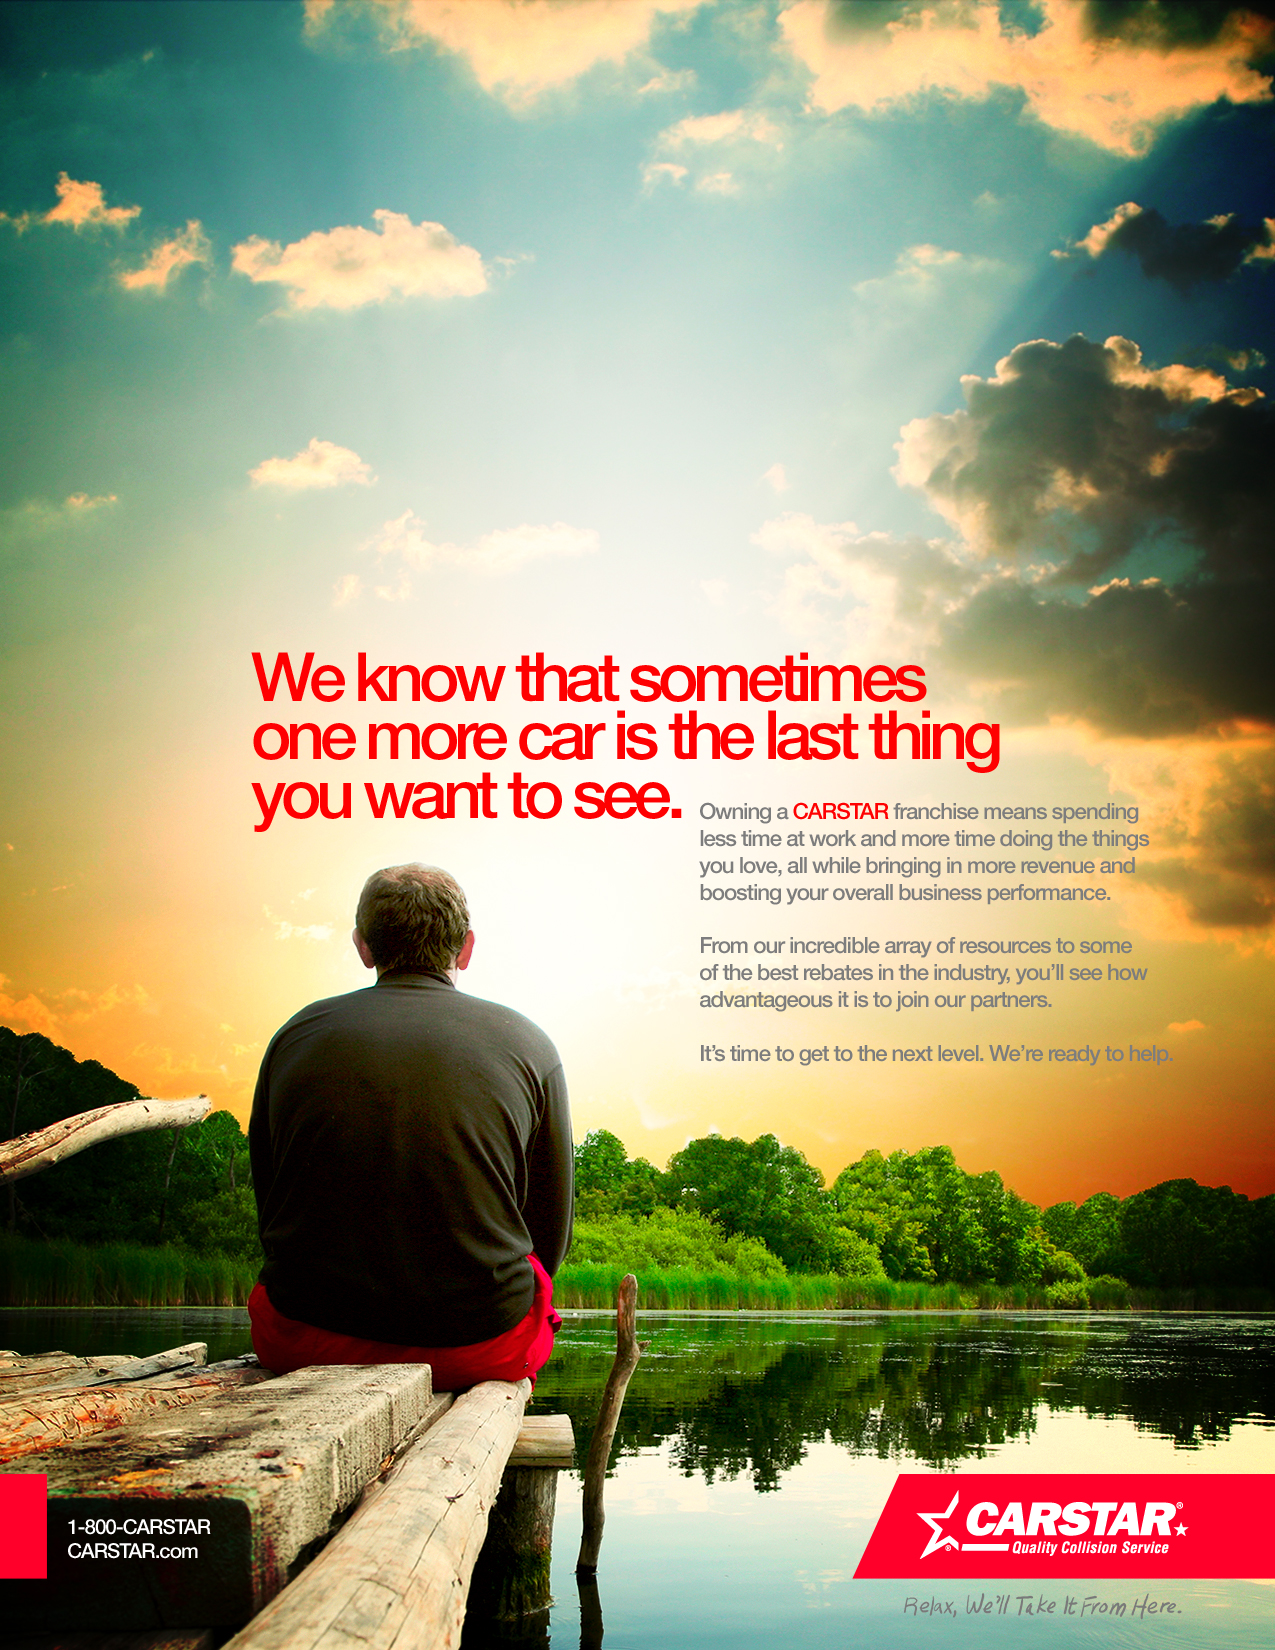 Print advertisement for CARSTAR featuring a man sitting on a dock looking out over a lake at sunset